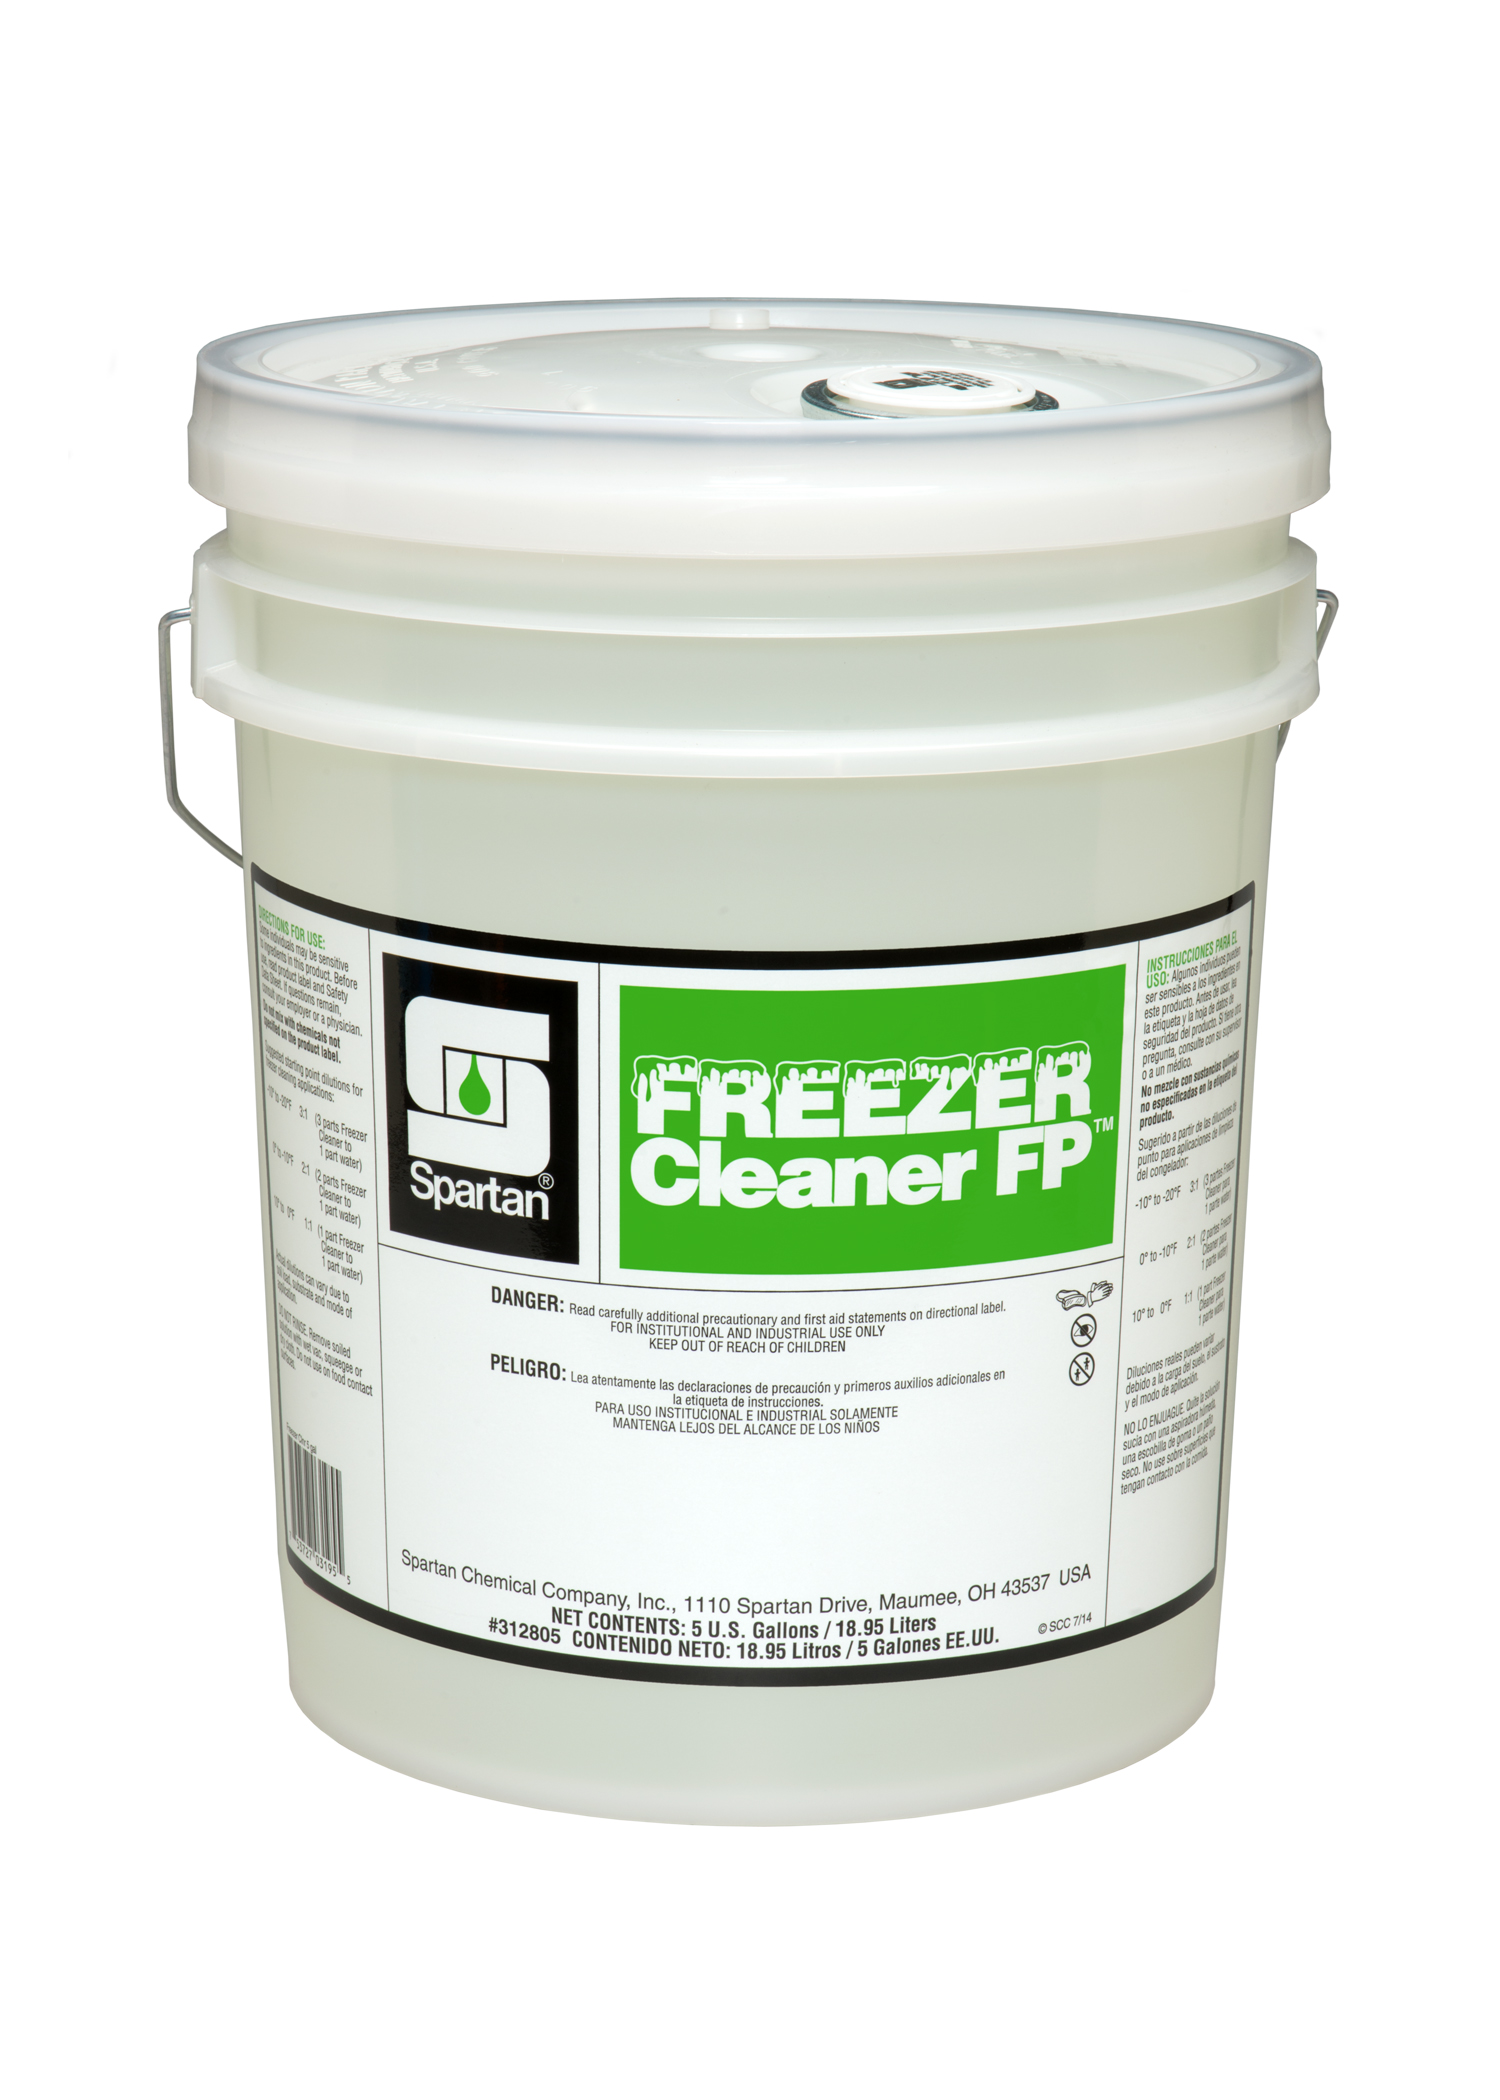 PicturesLogo/FREEZER CLEANER.jpg